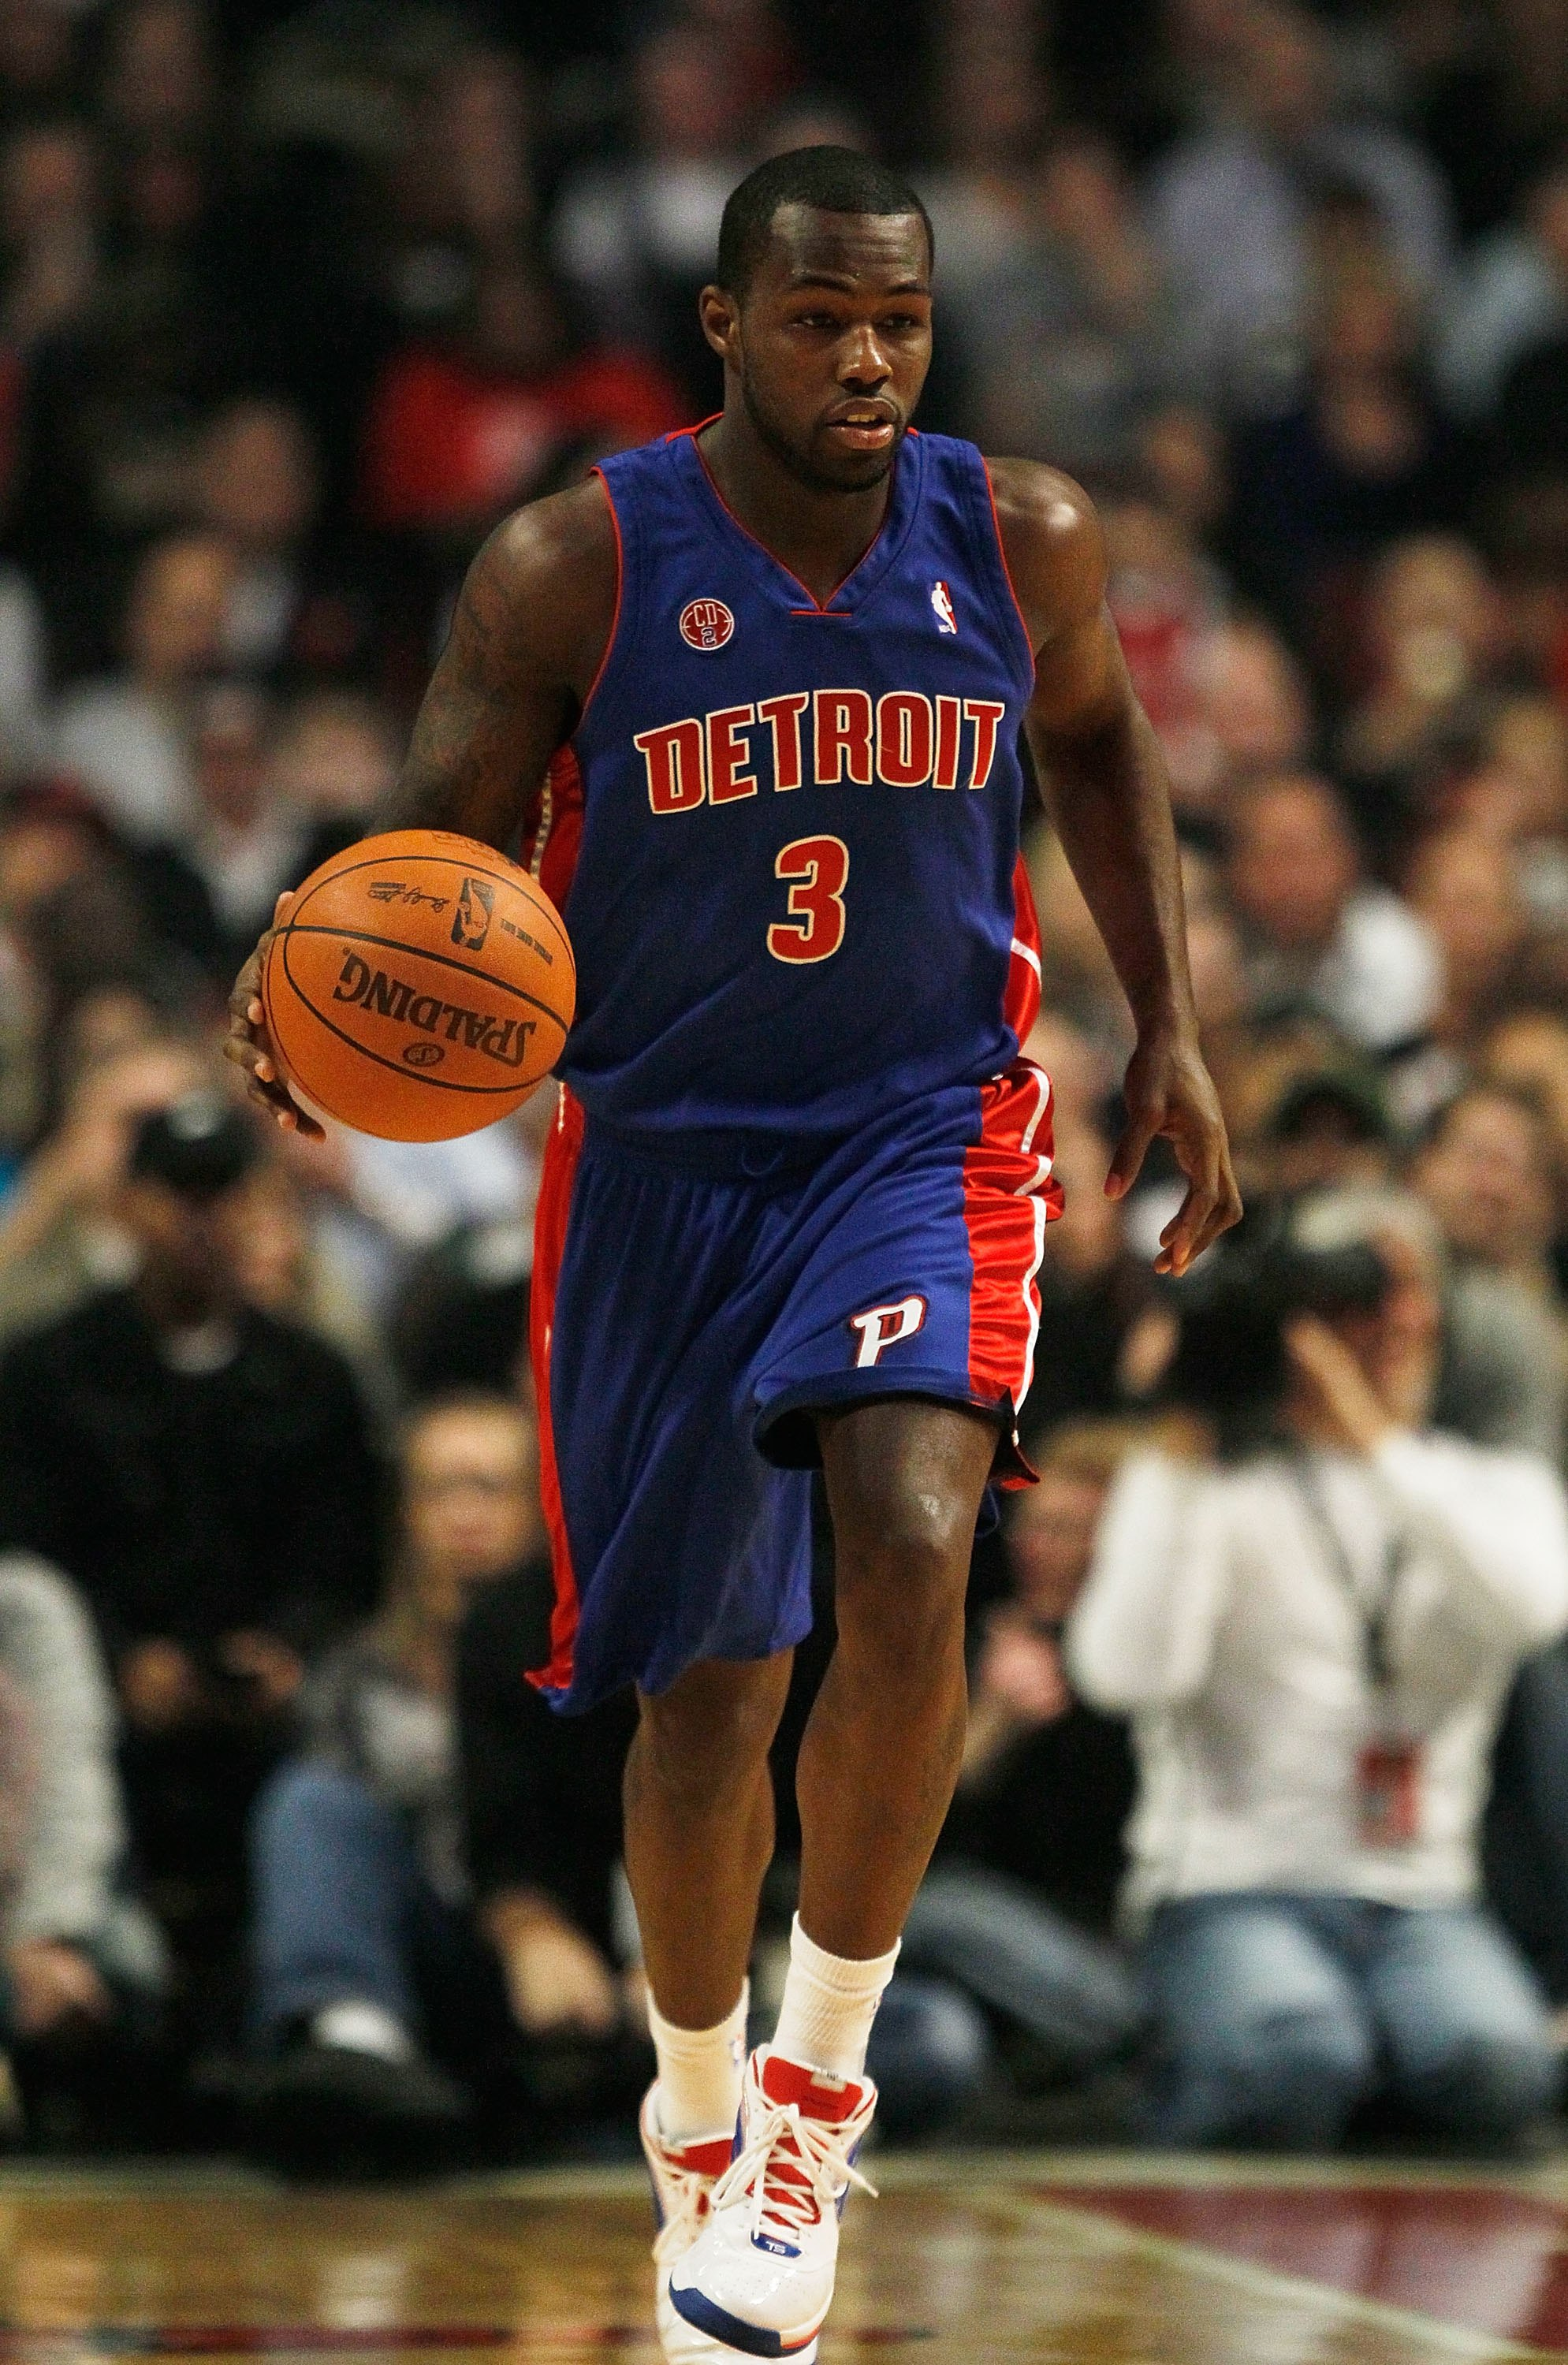 CHICAGO - DECEMBER 02: Rodney Stucky #3 of the Detroit Pistonsbrings the ball upcourt against the Chicago Bulls at the United Center on December 2, 2009 in Chicago, Illinois. The Bulls defeated the Pistons 92-85. NOTE TO USER: User expressly acknowledges